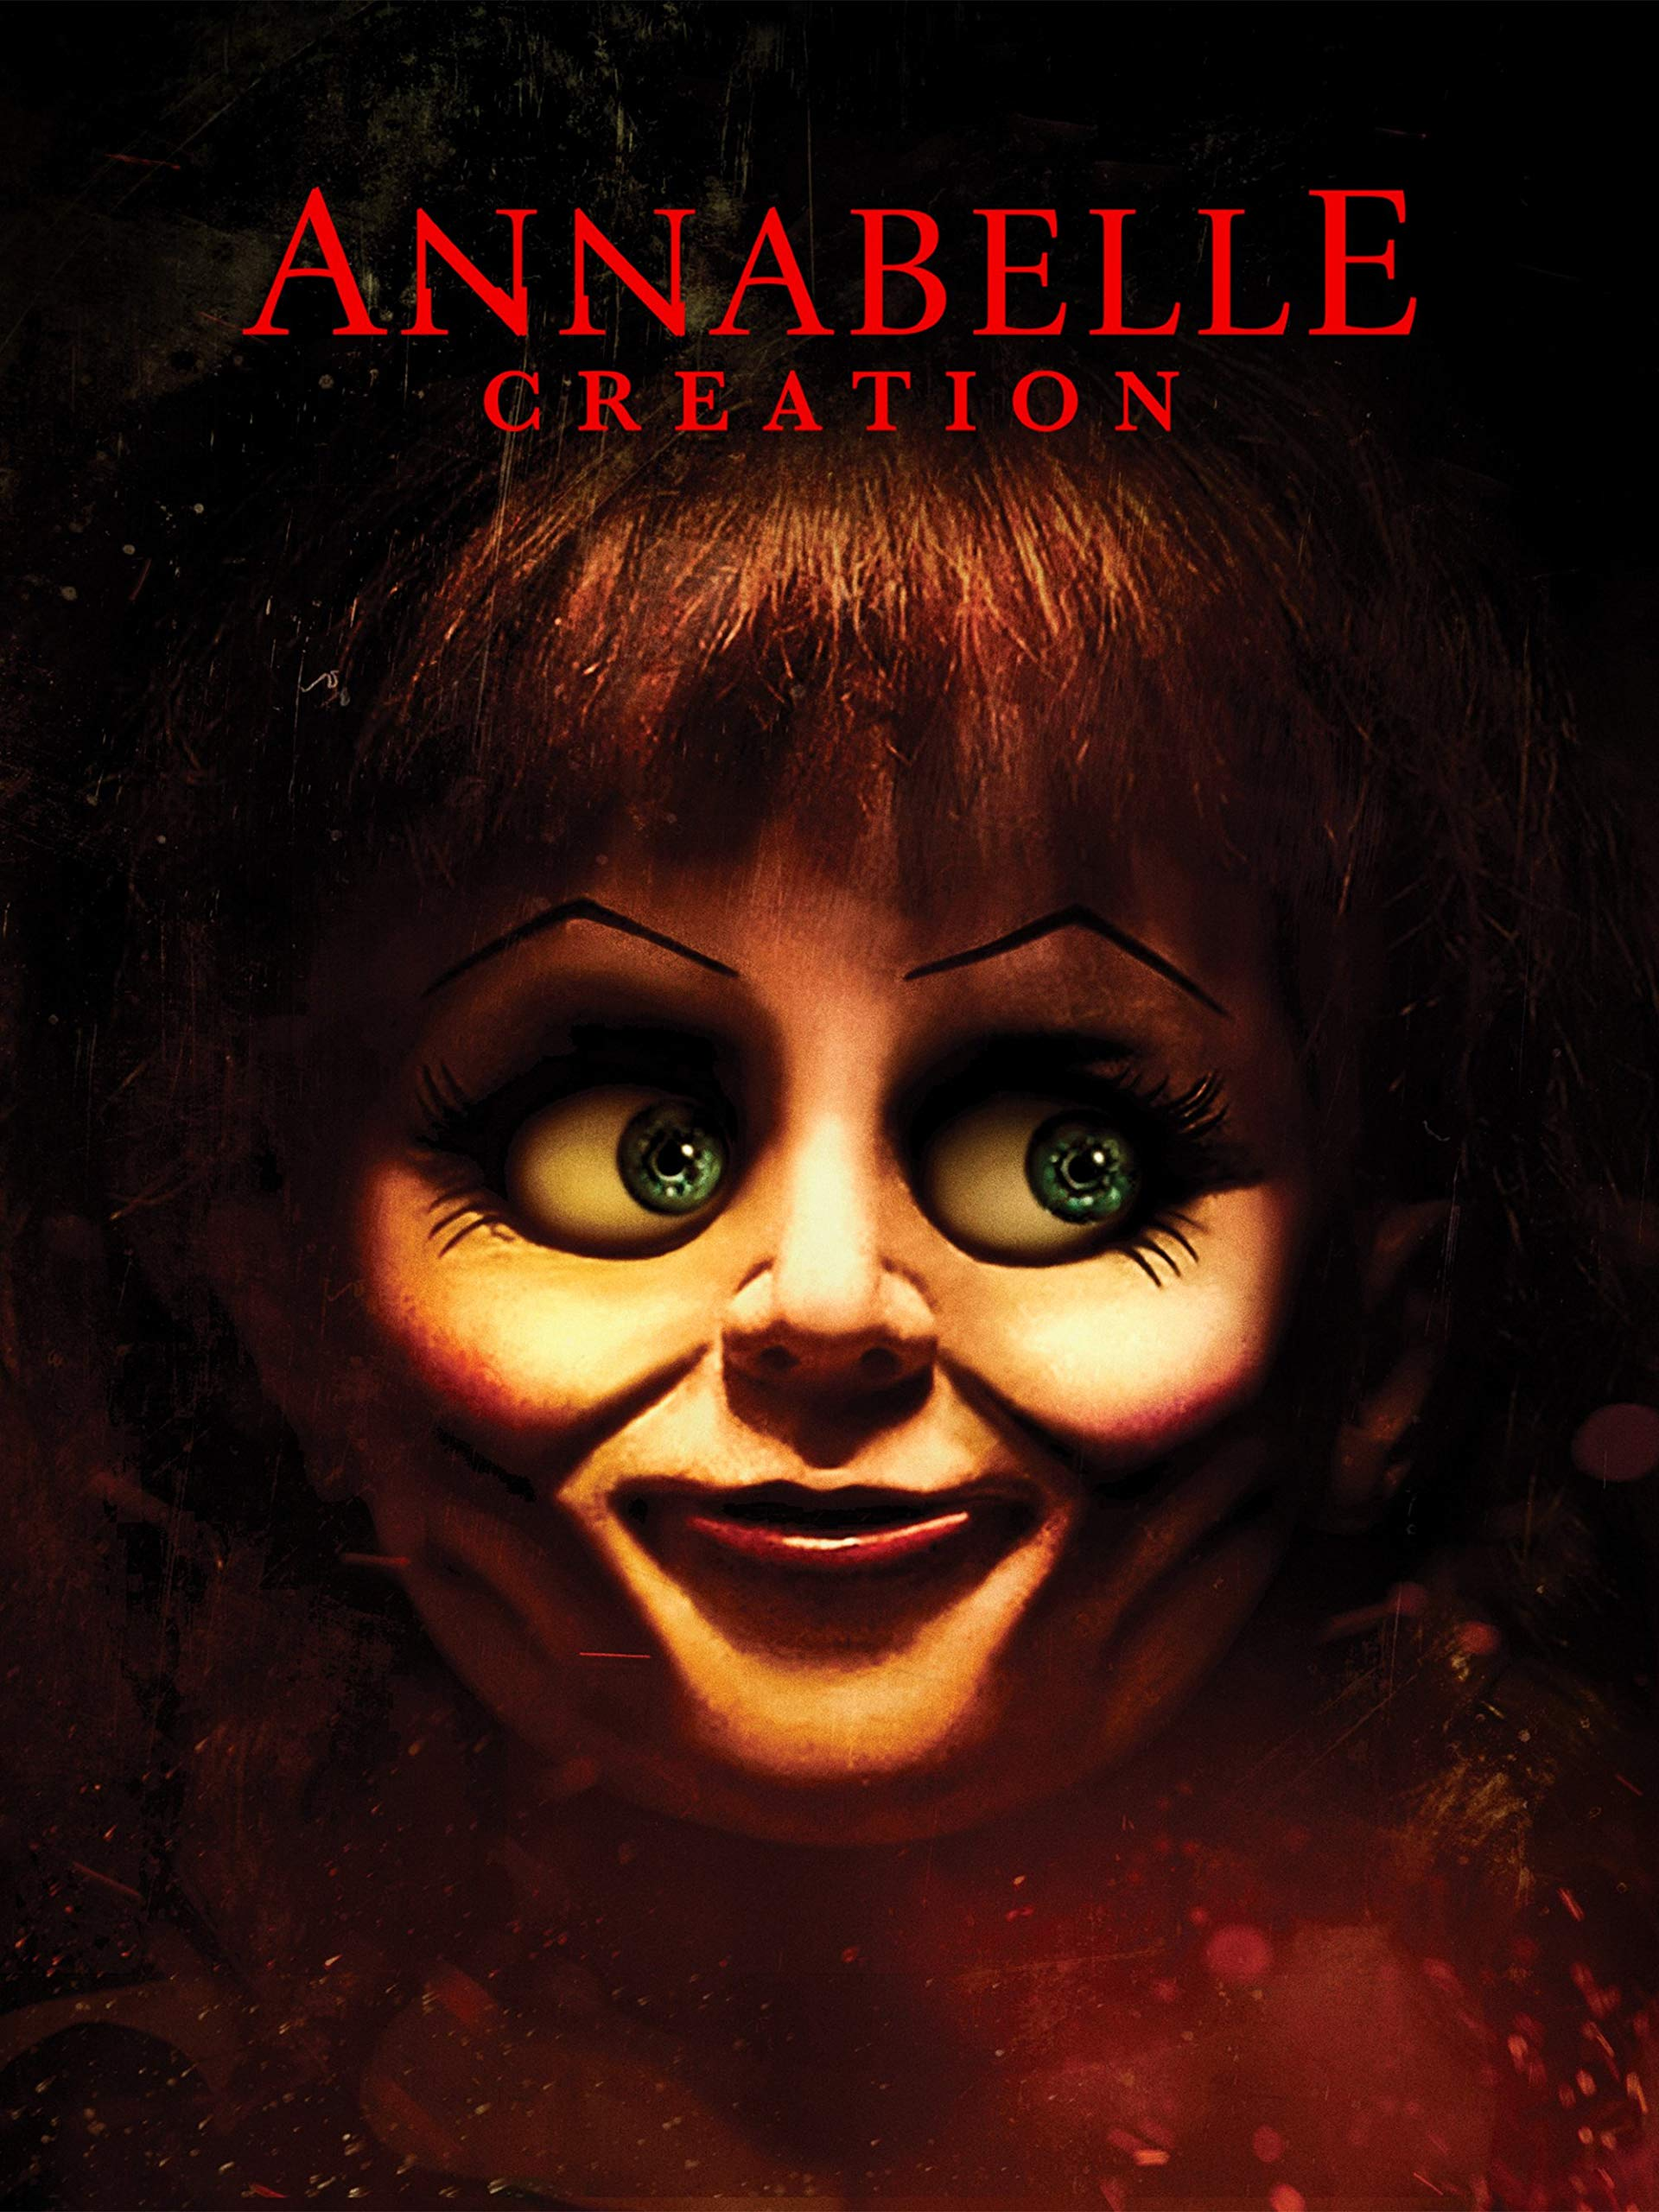 Watch Annabelle Creation Prime Video